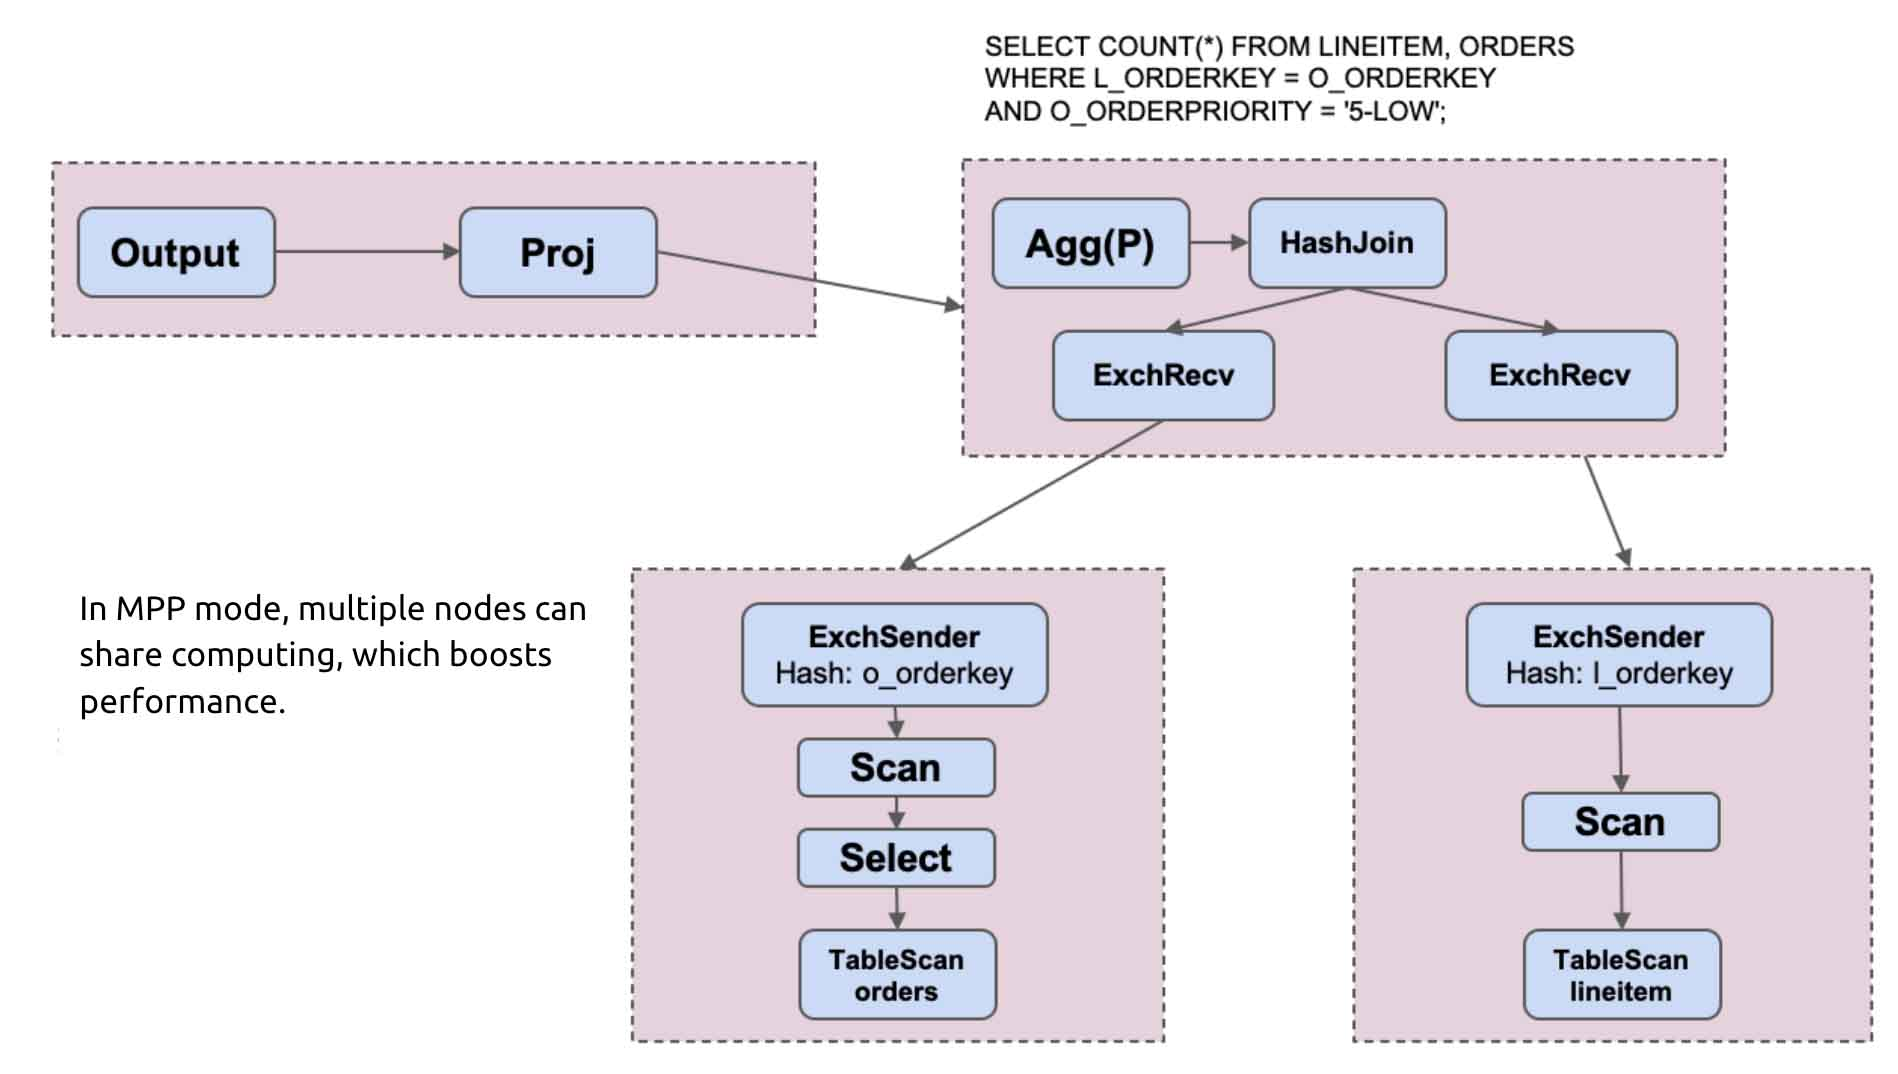 A query execution plan in MPP mode